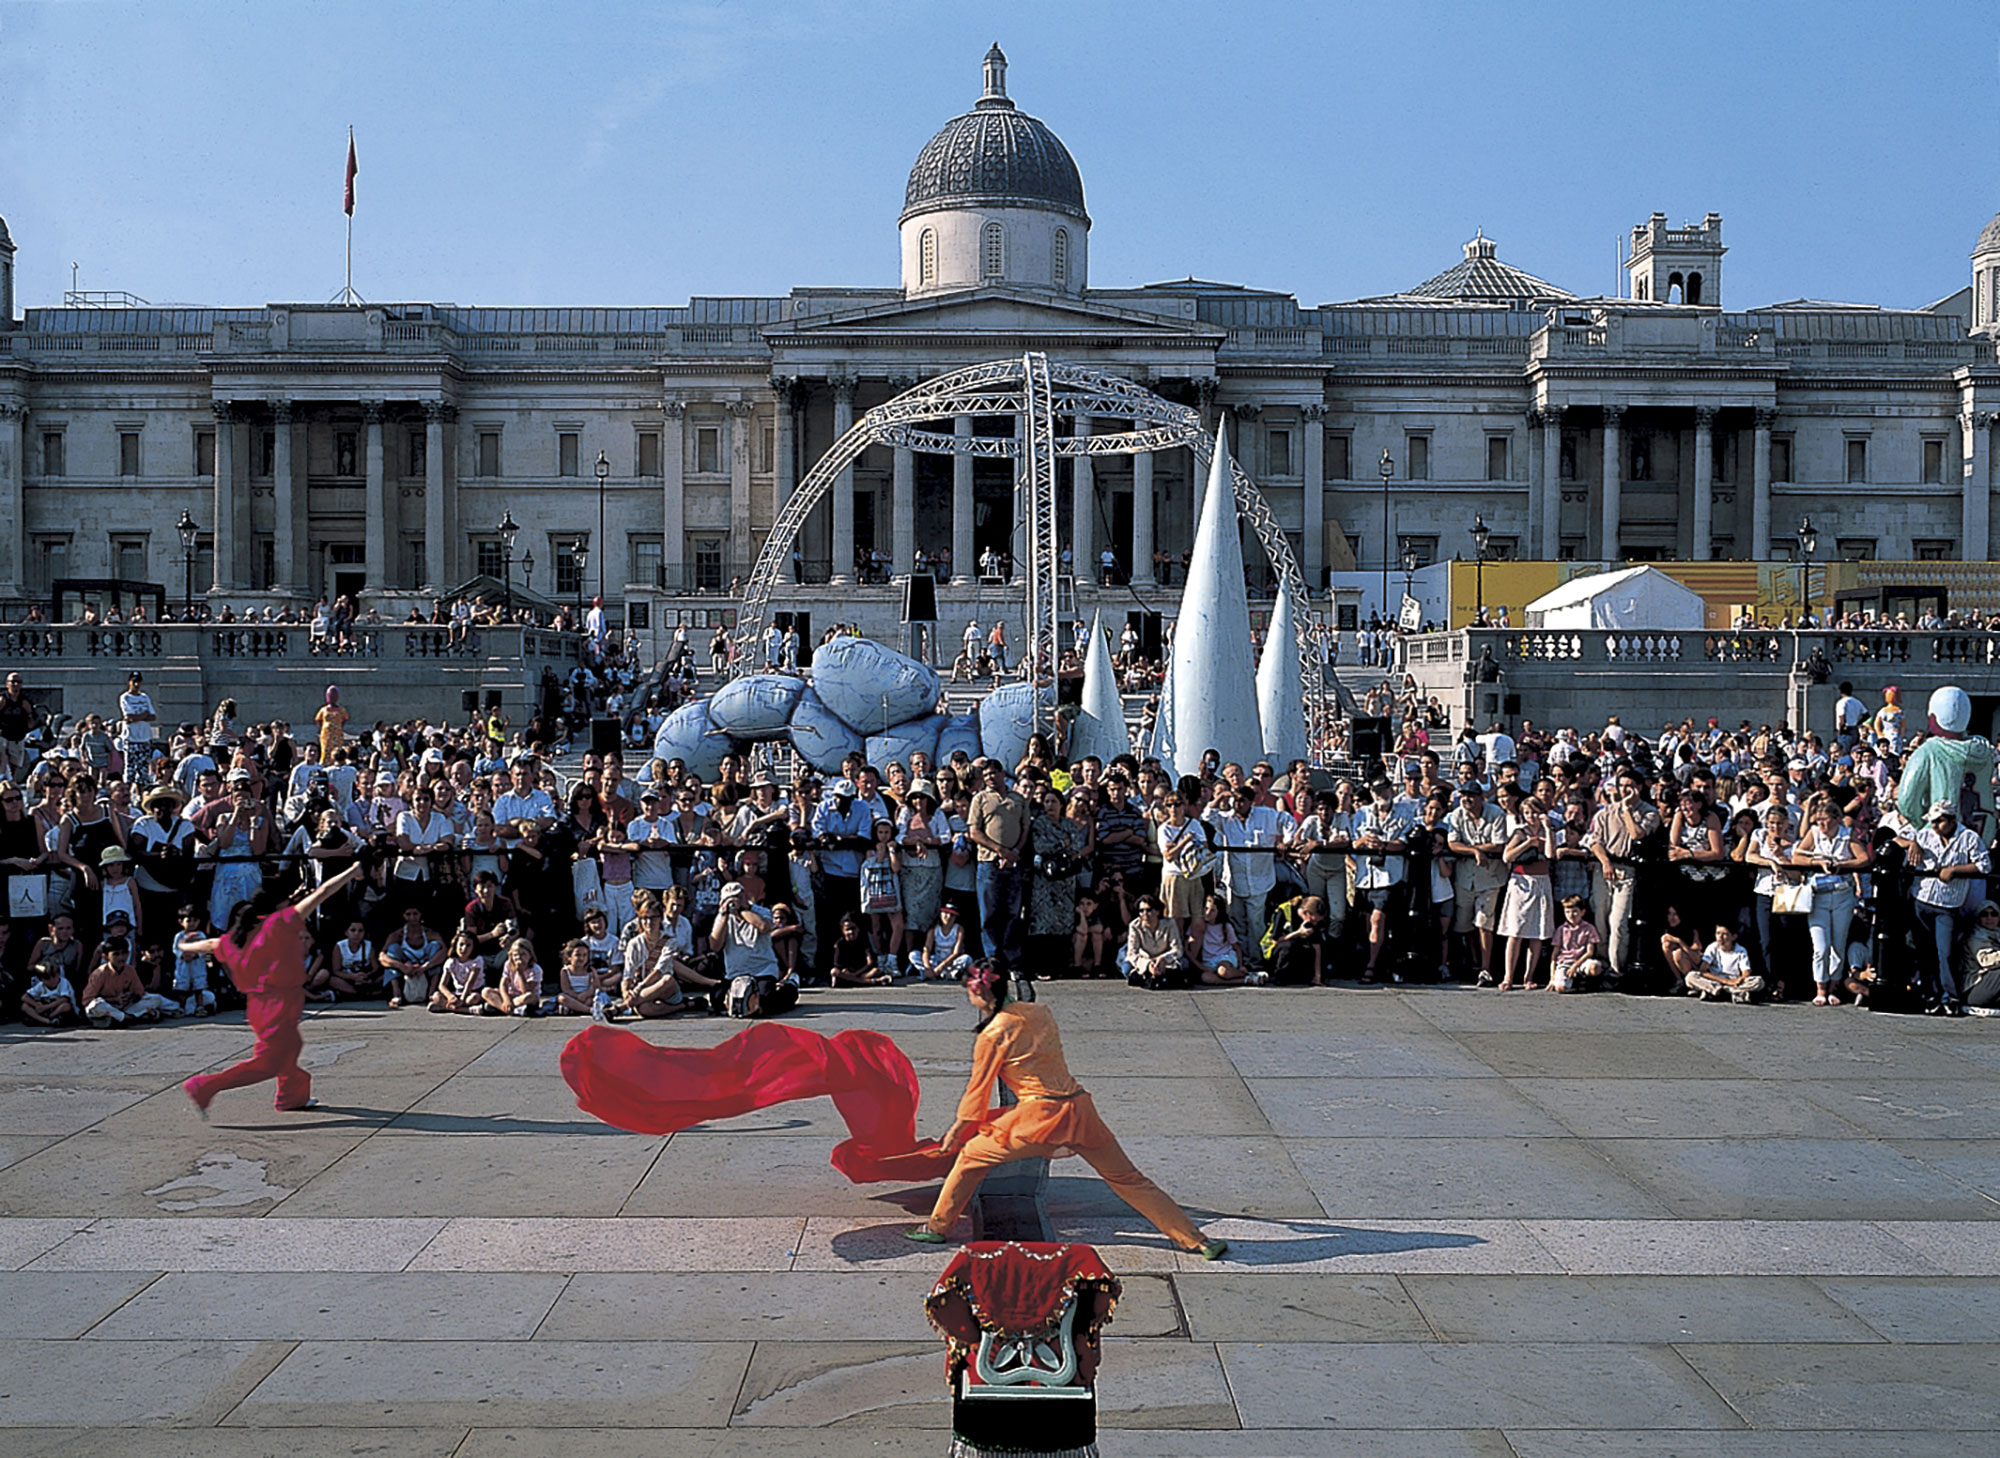 Trafalgar Square also now hosts art shows and is used for impromptu performances. Credit Nigel Young, Foster + Partners